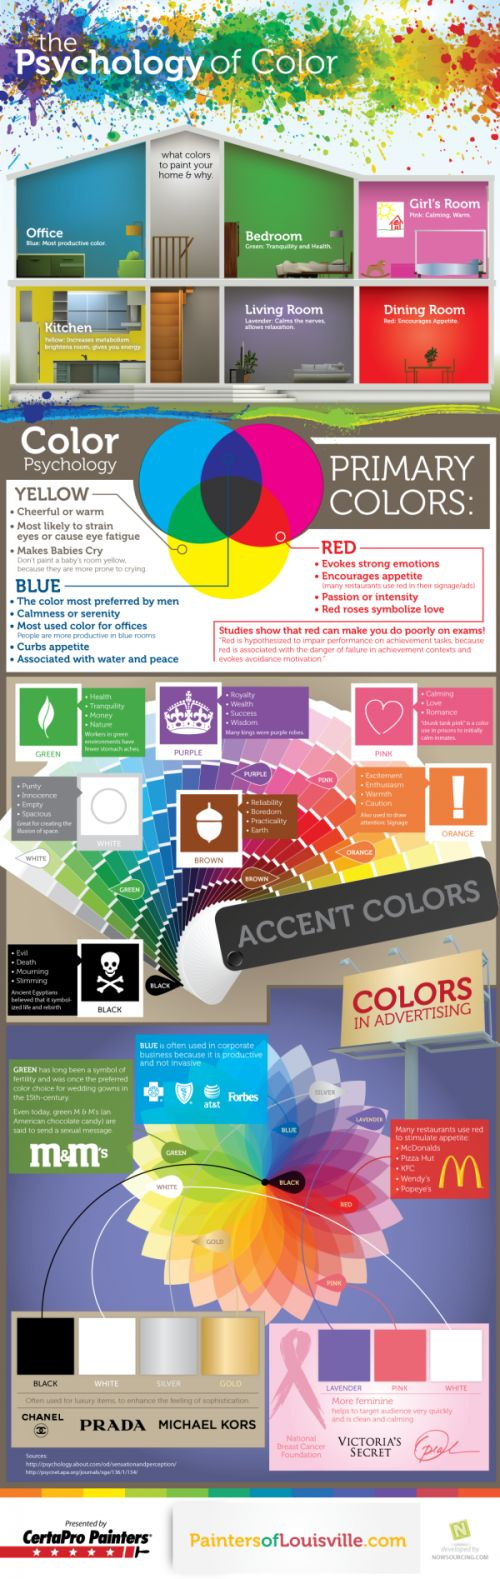 The Psychology of Color.. was surprised that yellow makes babies more prone to cry...